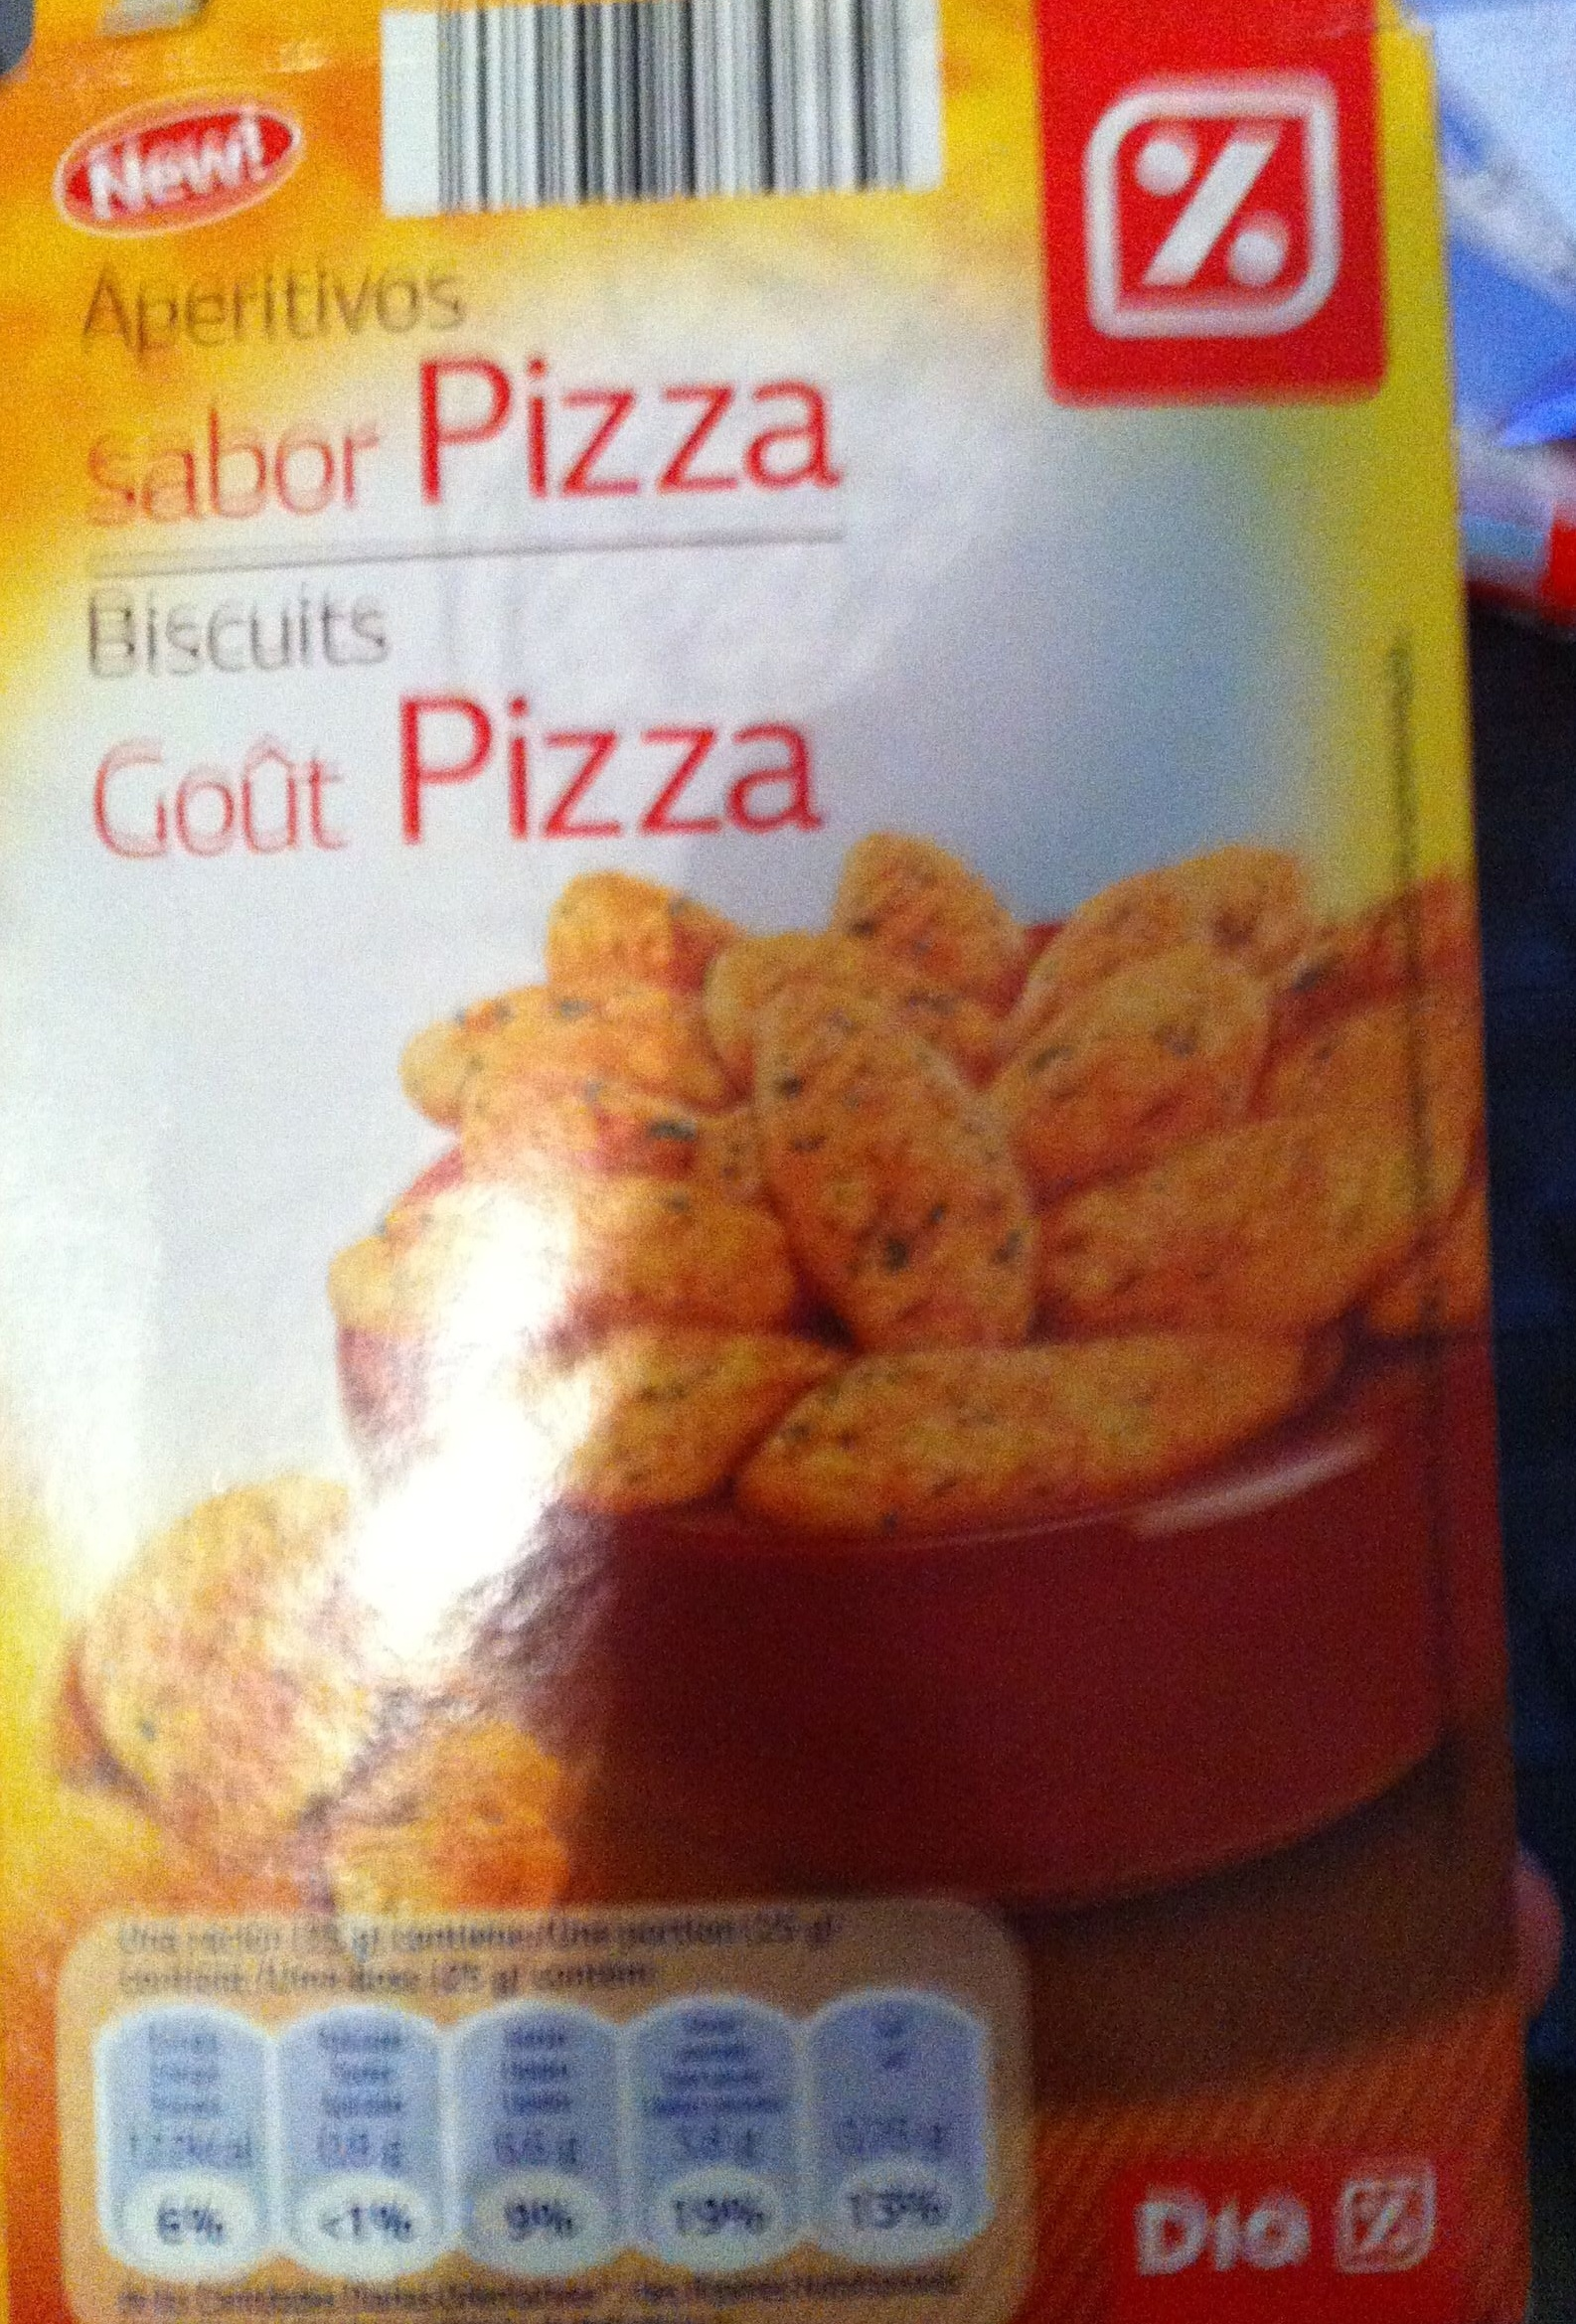 Bicuits goût pizza - Product